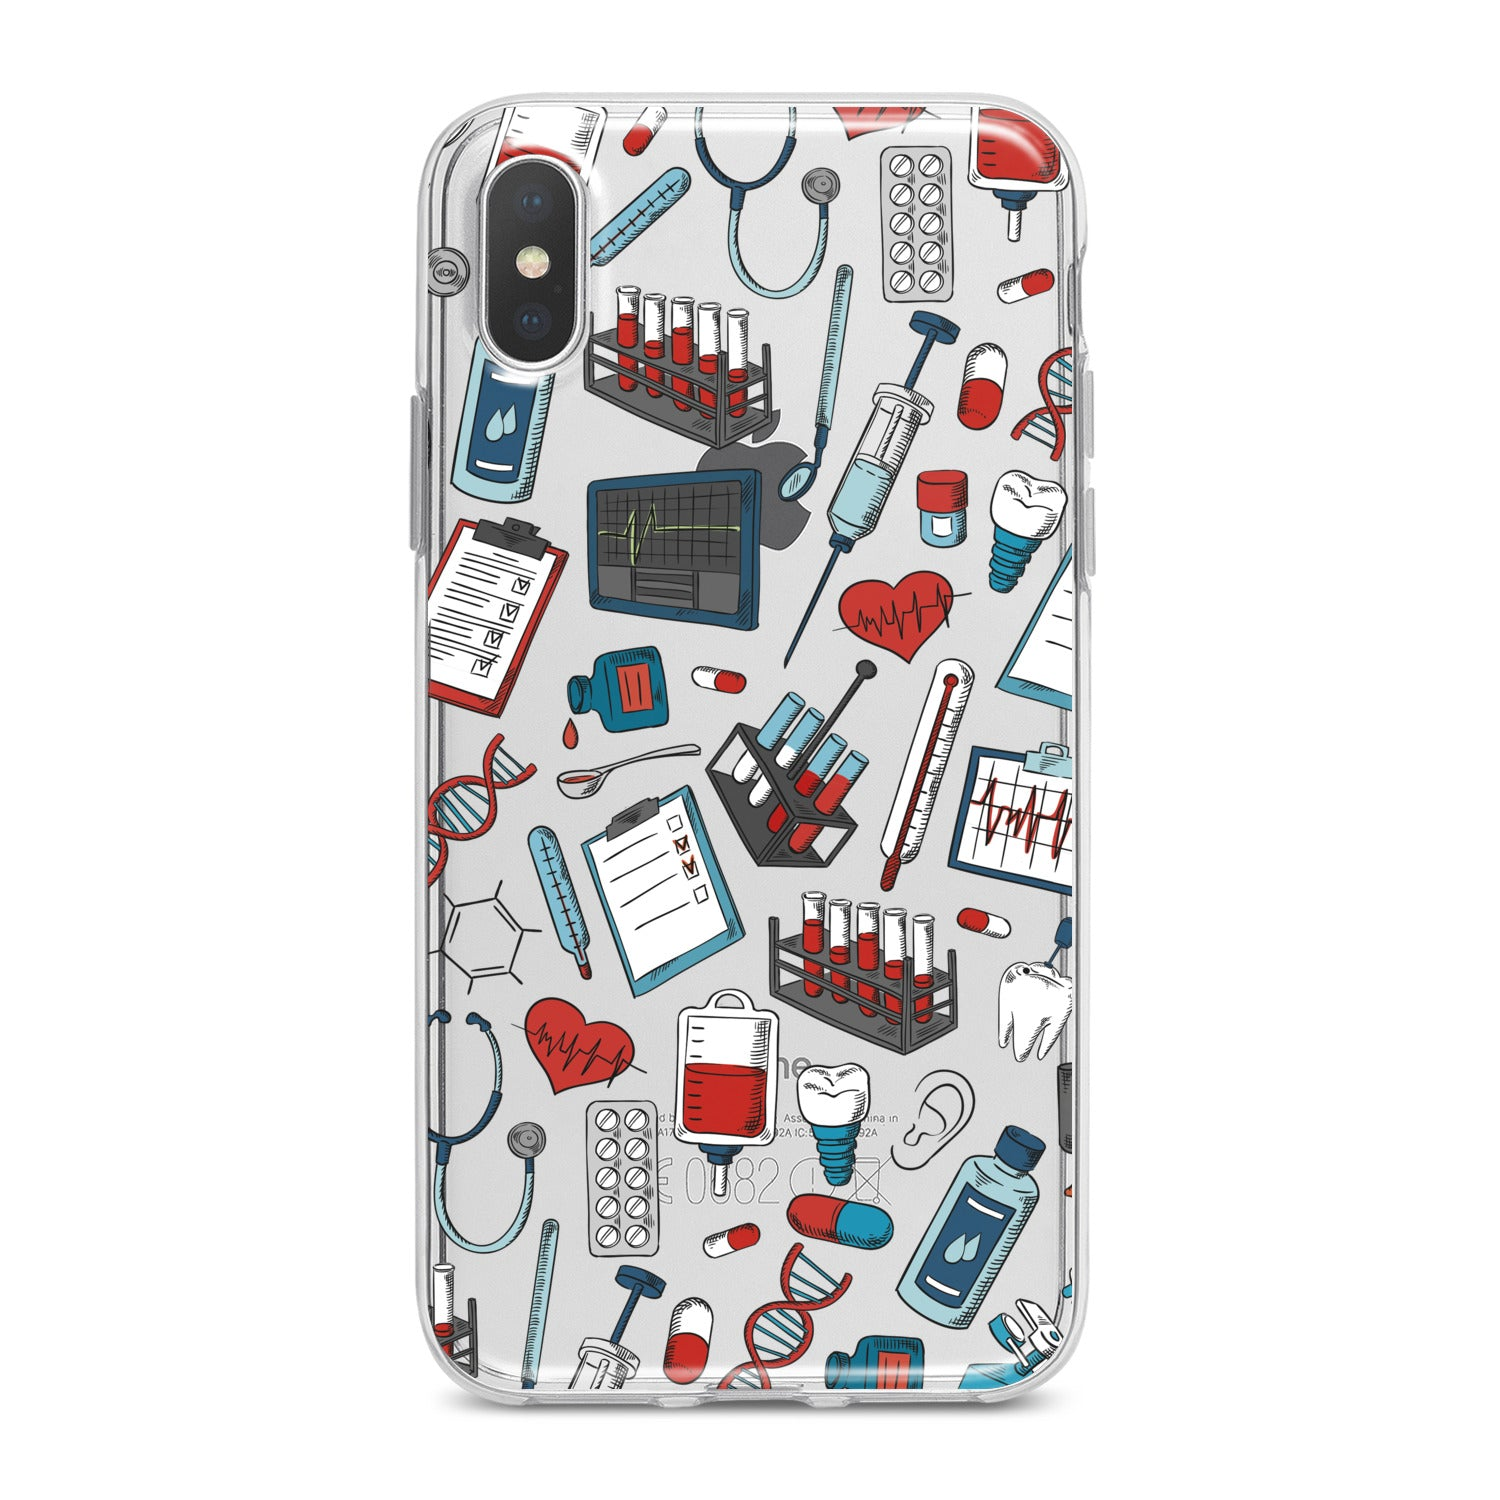 Lex Altern Medical Pattern Phone Case for your iPhone & Android phone.